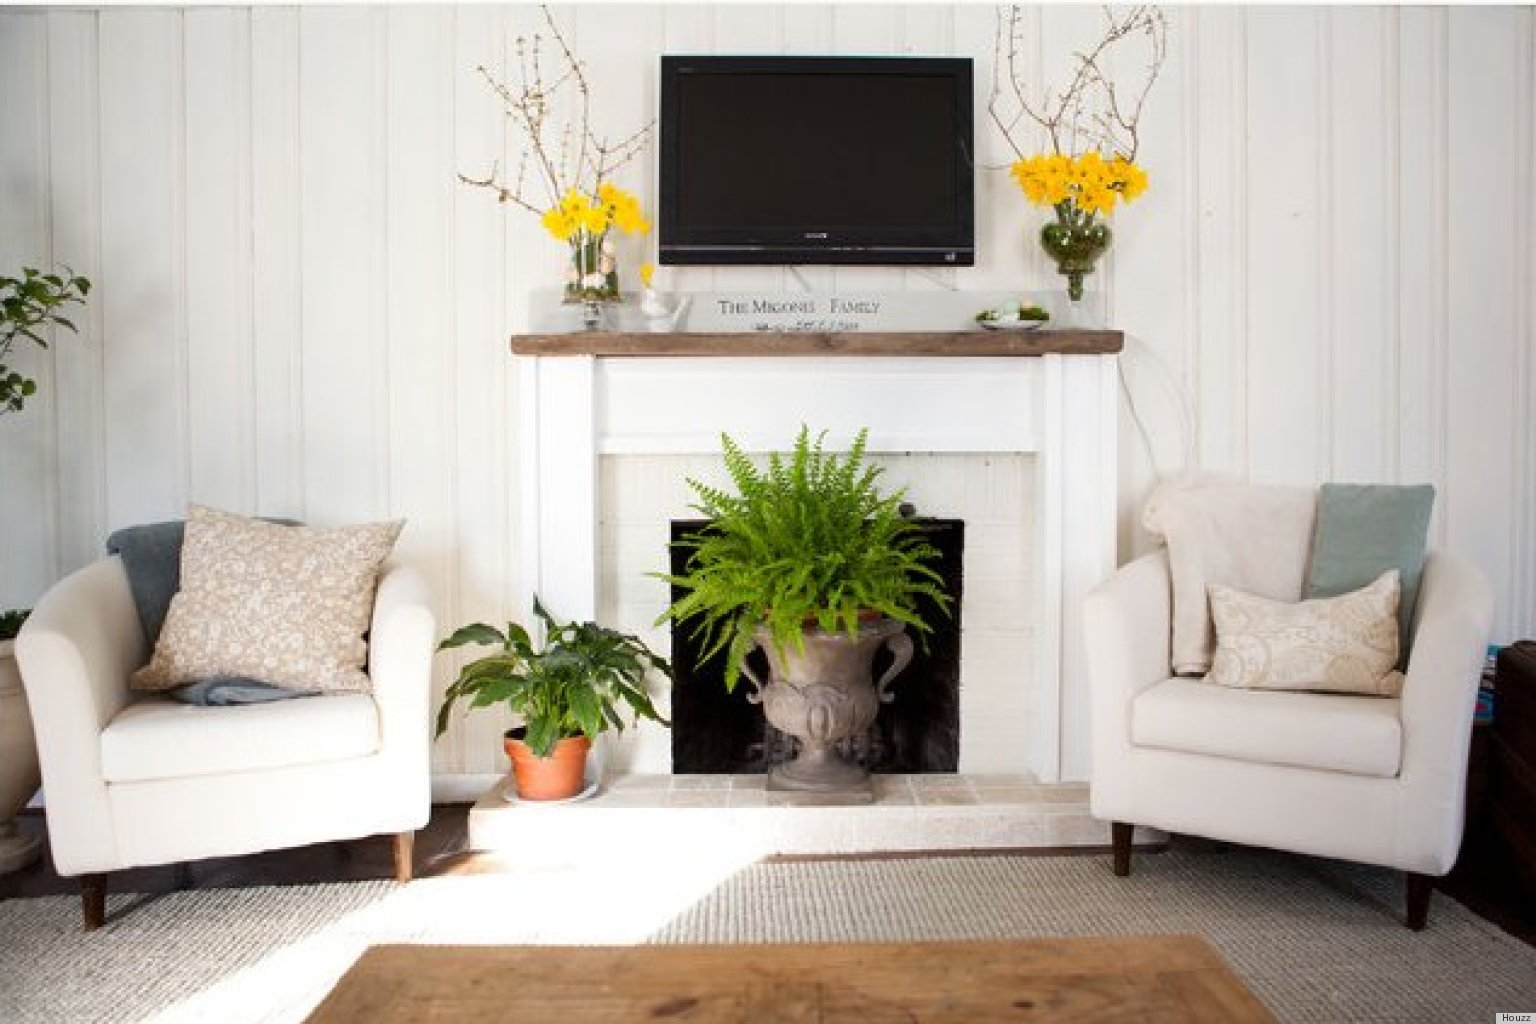 Fireplace Decorations Captivating 10 Ways To Decorate Your Fireplace In The Summer Since You Won't Inspiration